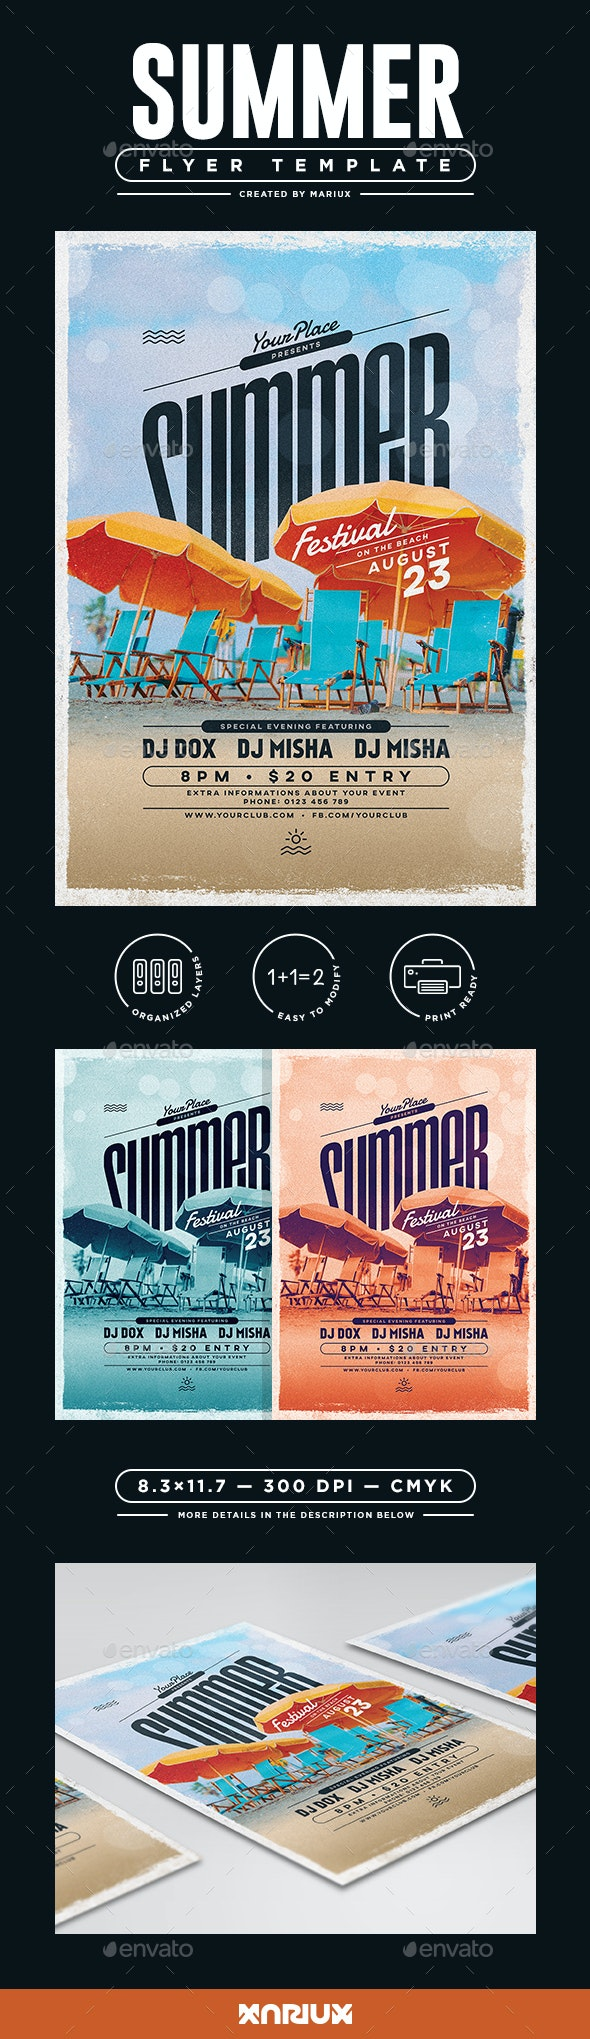 Summer Flyer/Poster - Clubs & Parties Events